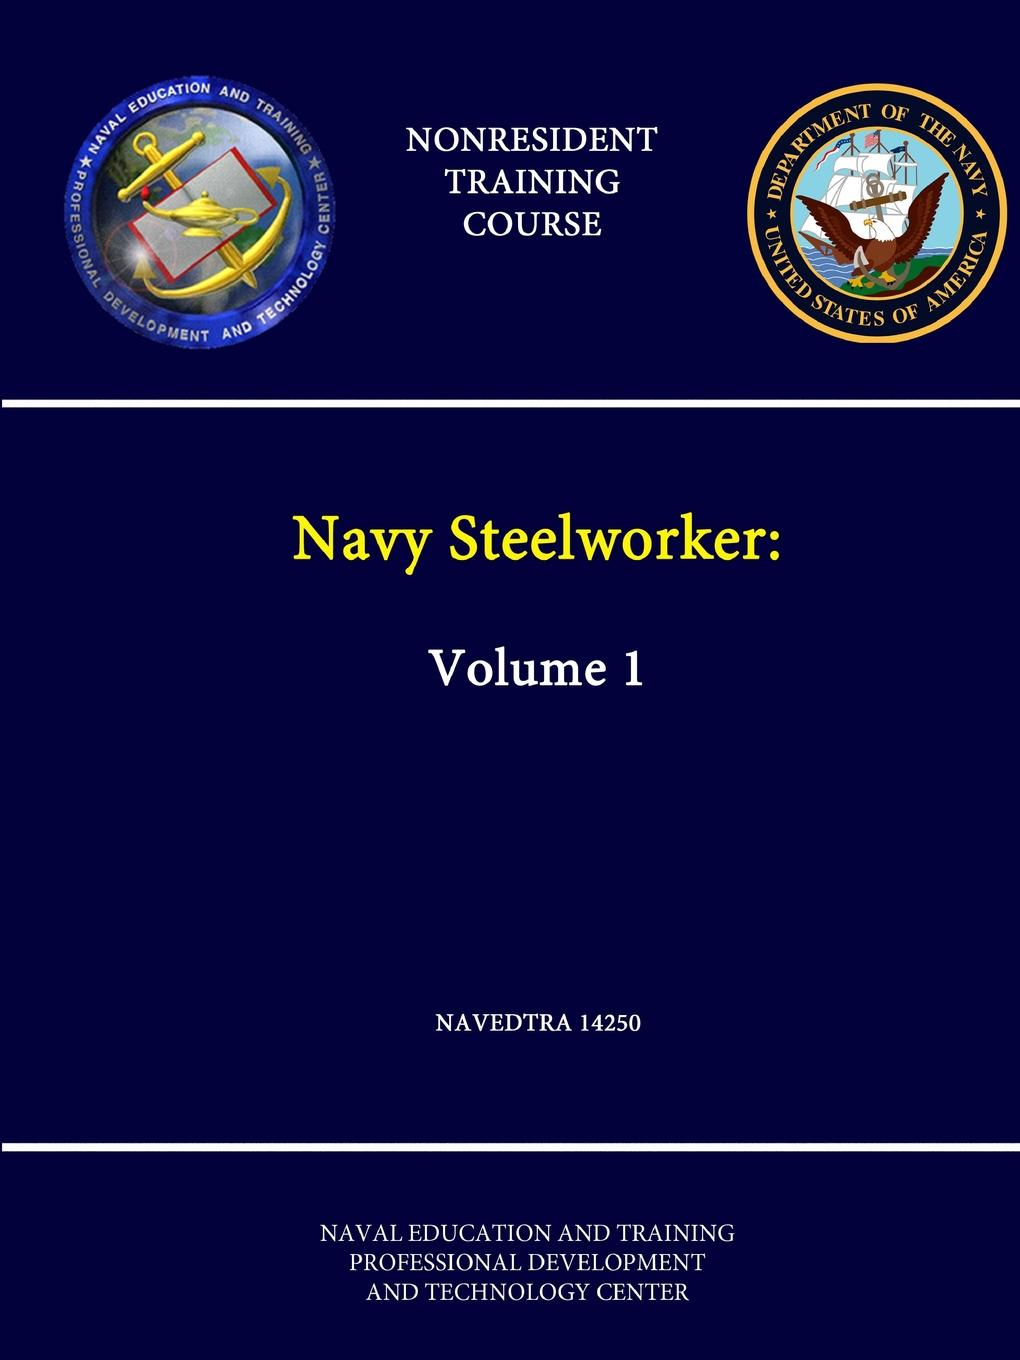 Naval Education & Training Center Navy Steelworker. Volume 1 - NAVEDTRA 14250 - (Nonresident Training Course) nbc 350d 500d gas shielded welding control panel two nbc welding main board old money